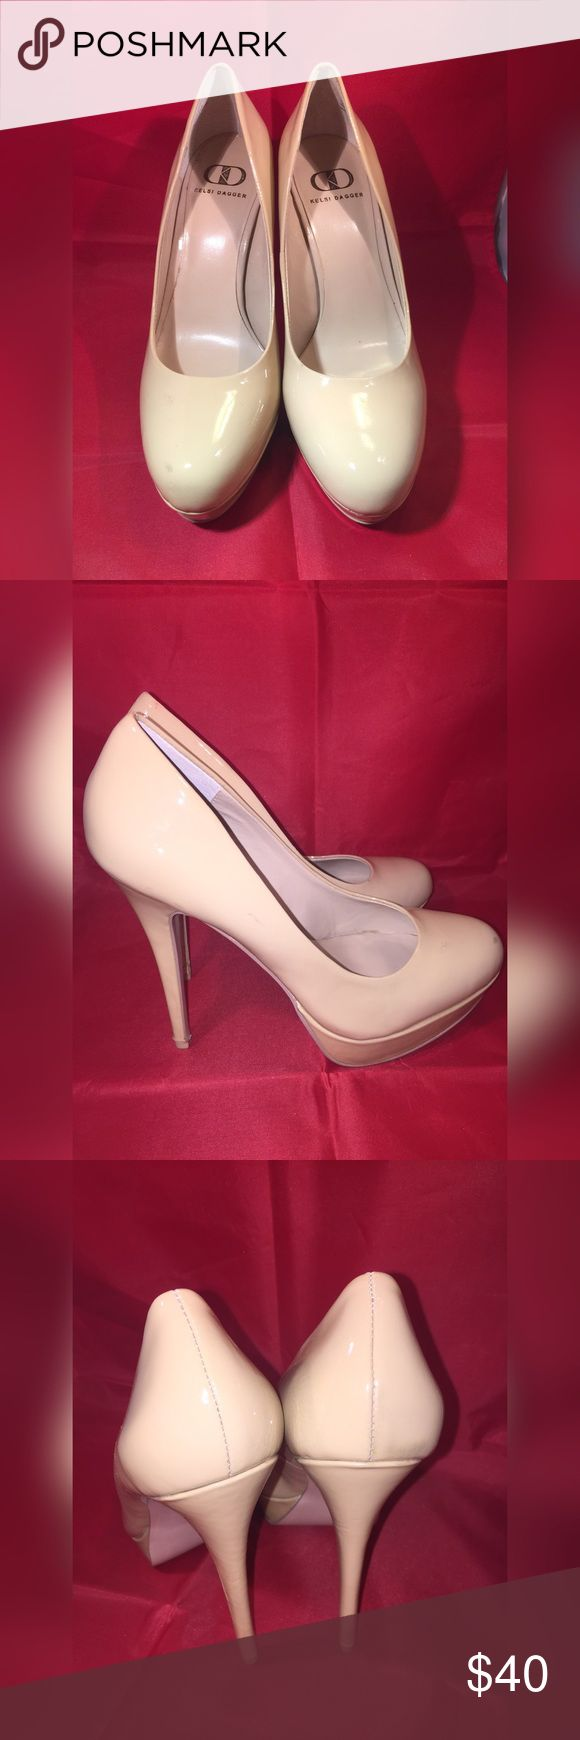 Nude patent pumps by Kelsi Dagger Used a couple of times Kelsi dagger nude patent pumps size 8.5. In good condition Kelsi Dagger Shoes Heels